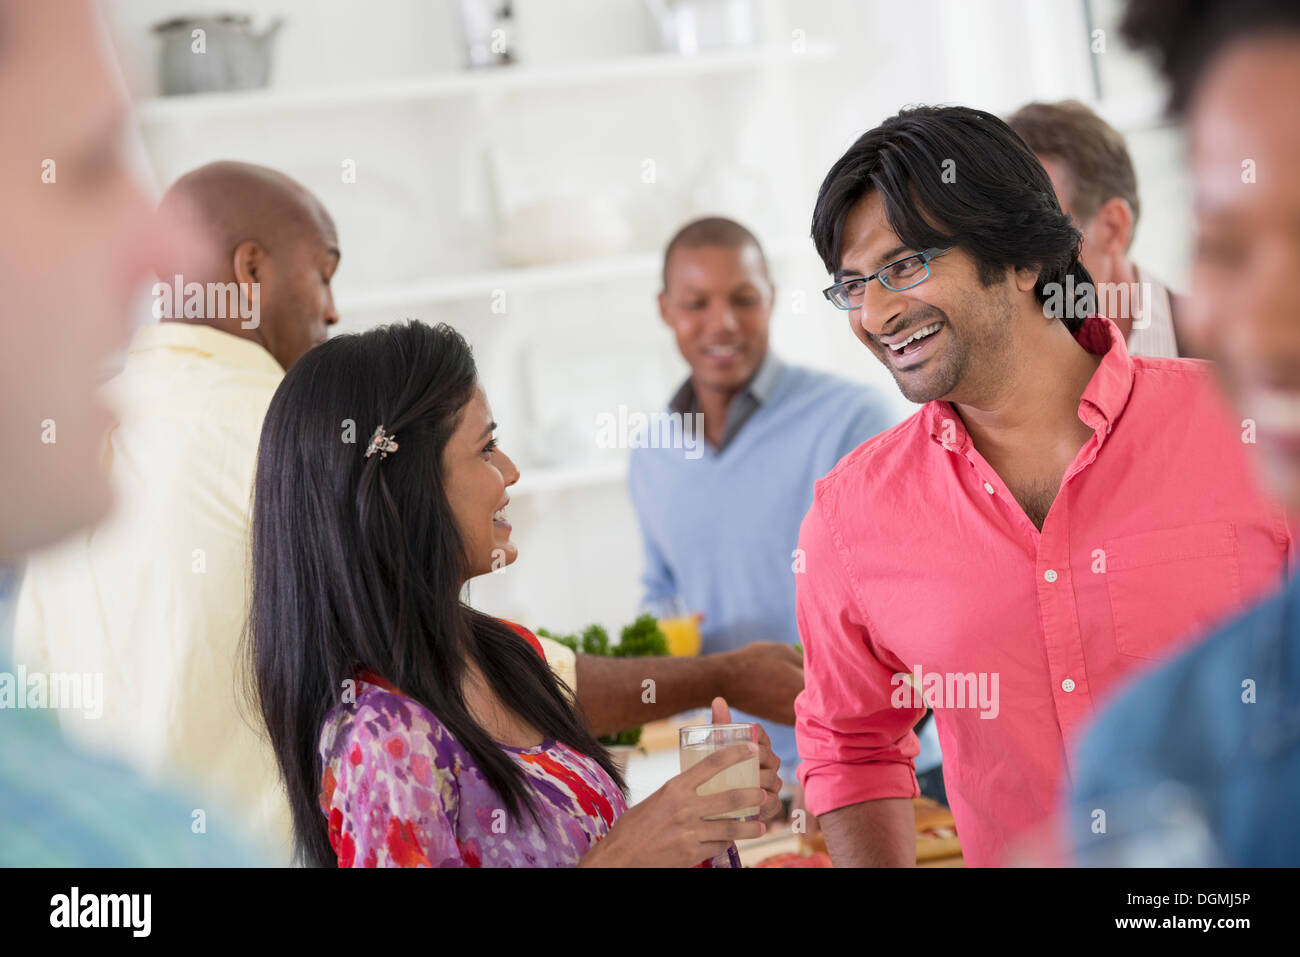 office party stock photos office party stock images alamy a networking office party or informal event a man and w at the centre of